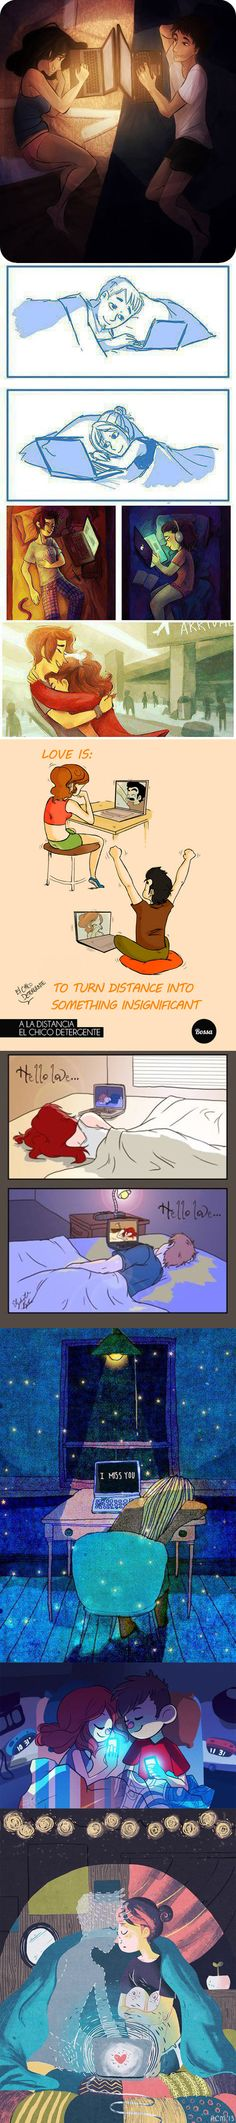 Long distance relationships are hard but worth it…